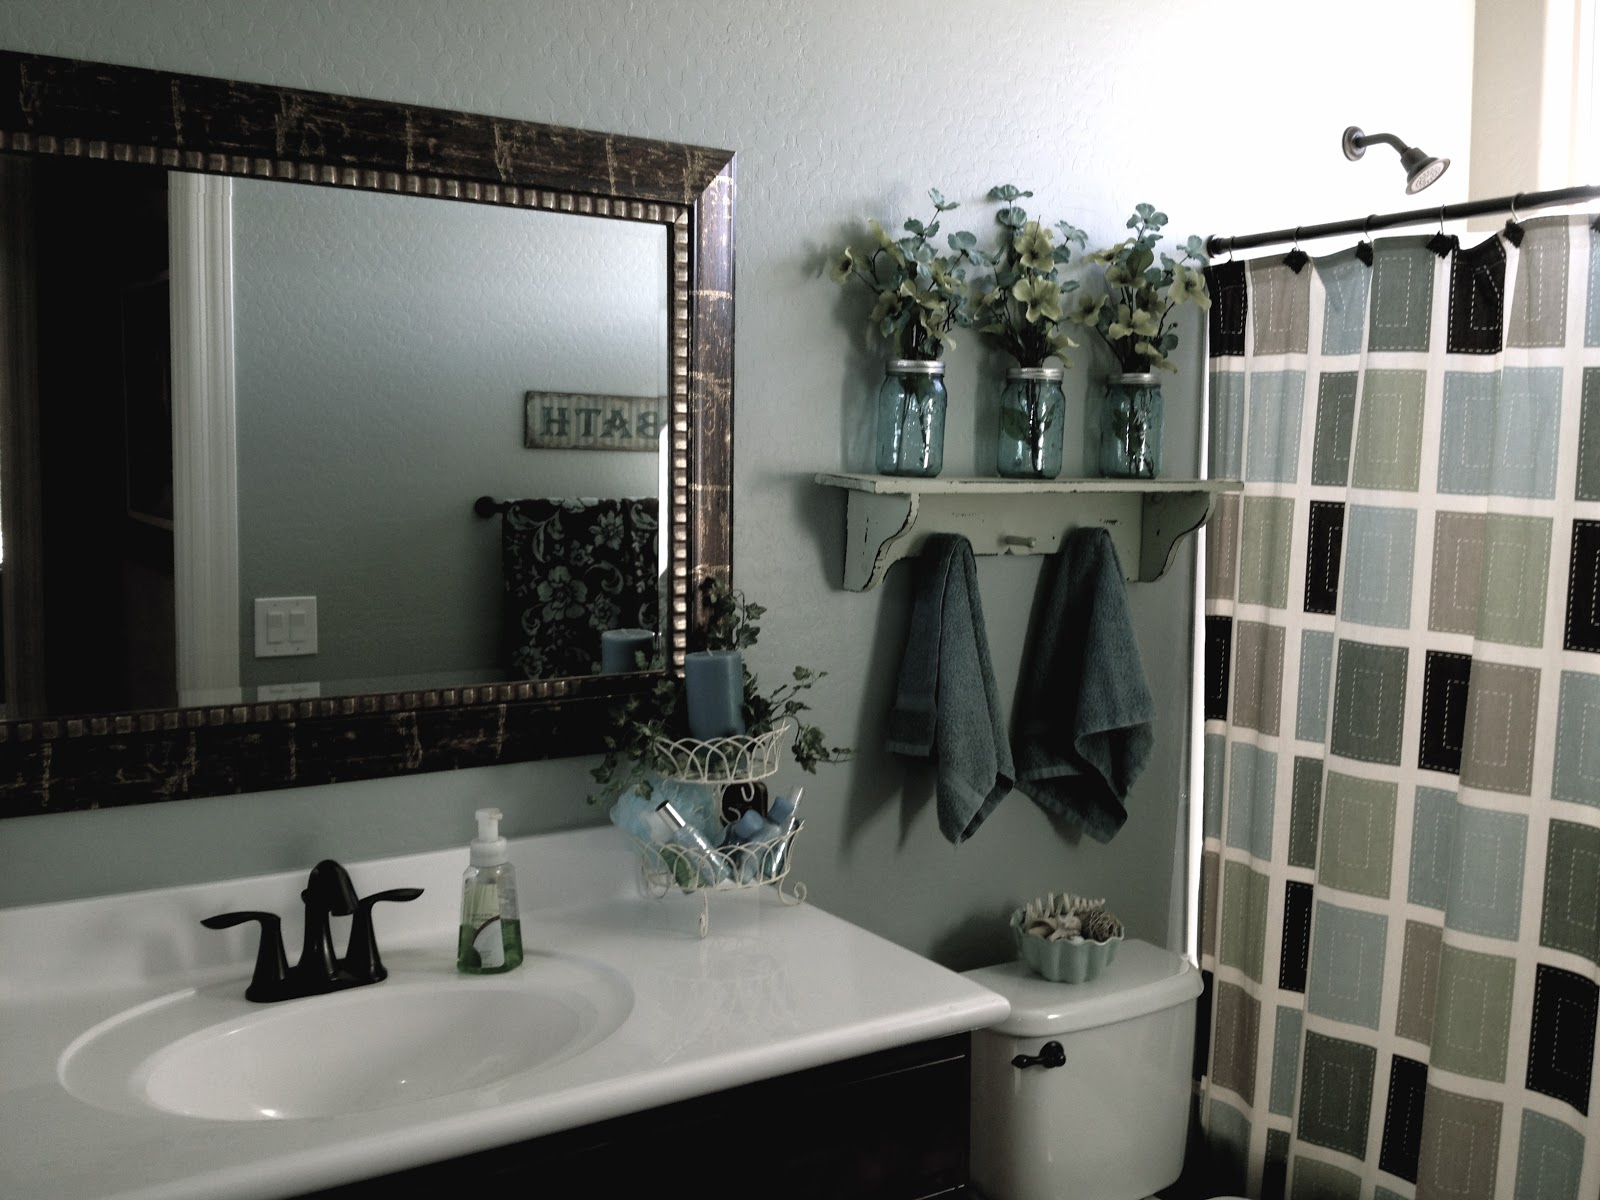 Little bit of paint mirror mirror for Small bathroom upgrade ideas